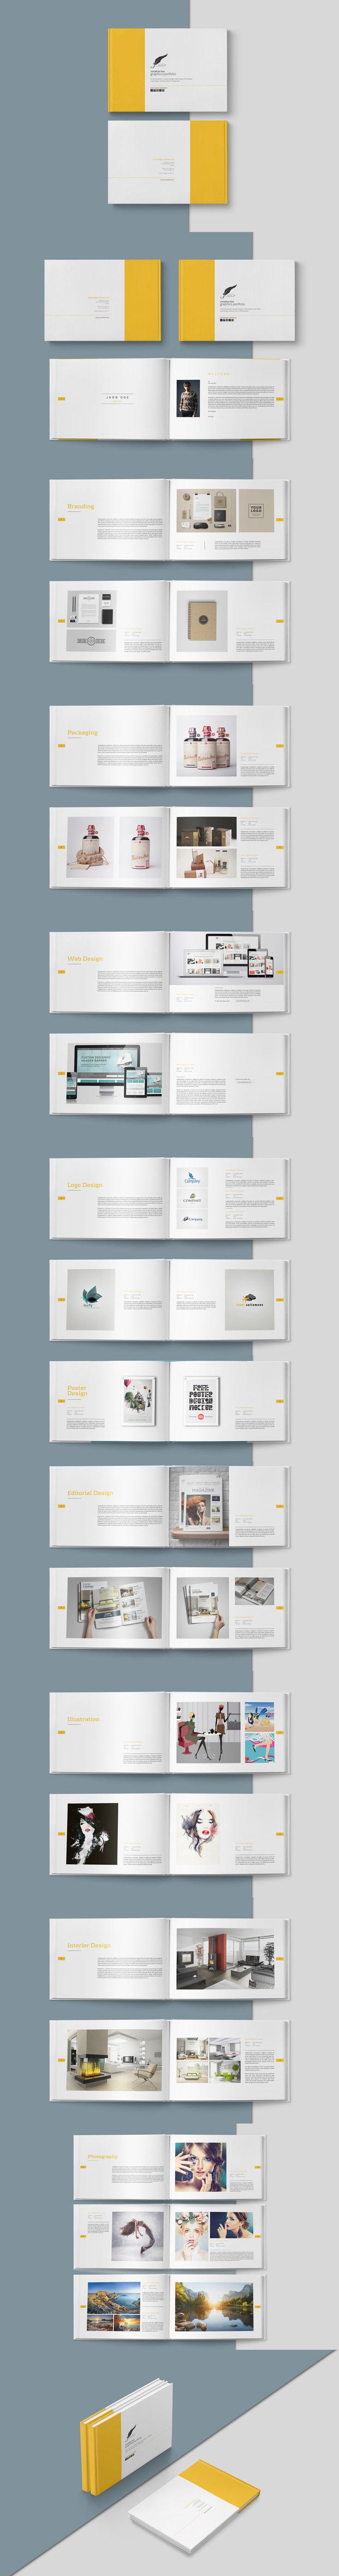 Best 25+ Brochure cover ideas on Pinterest | Brochure ... Architecture Portfolio Layout Indesign